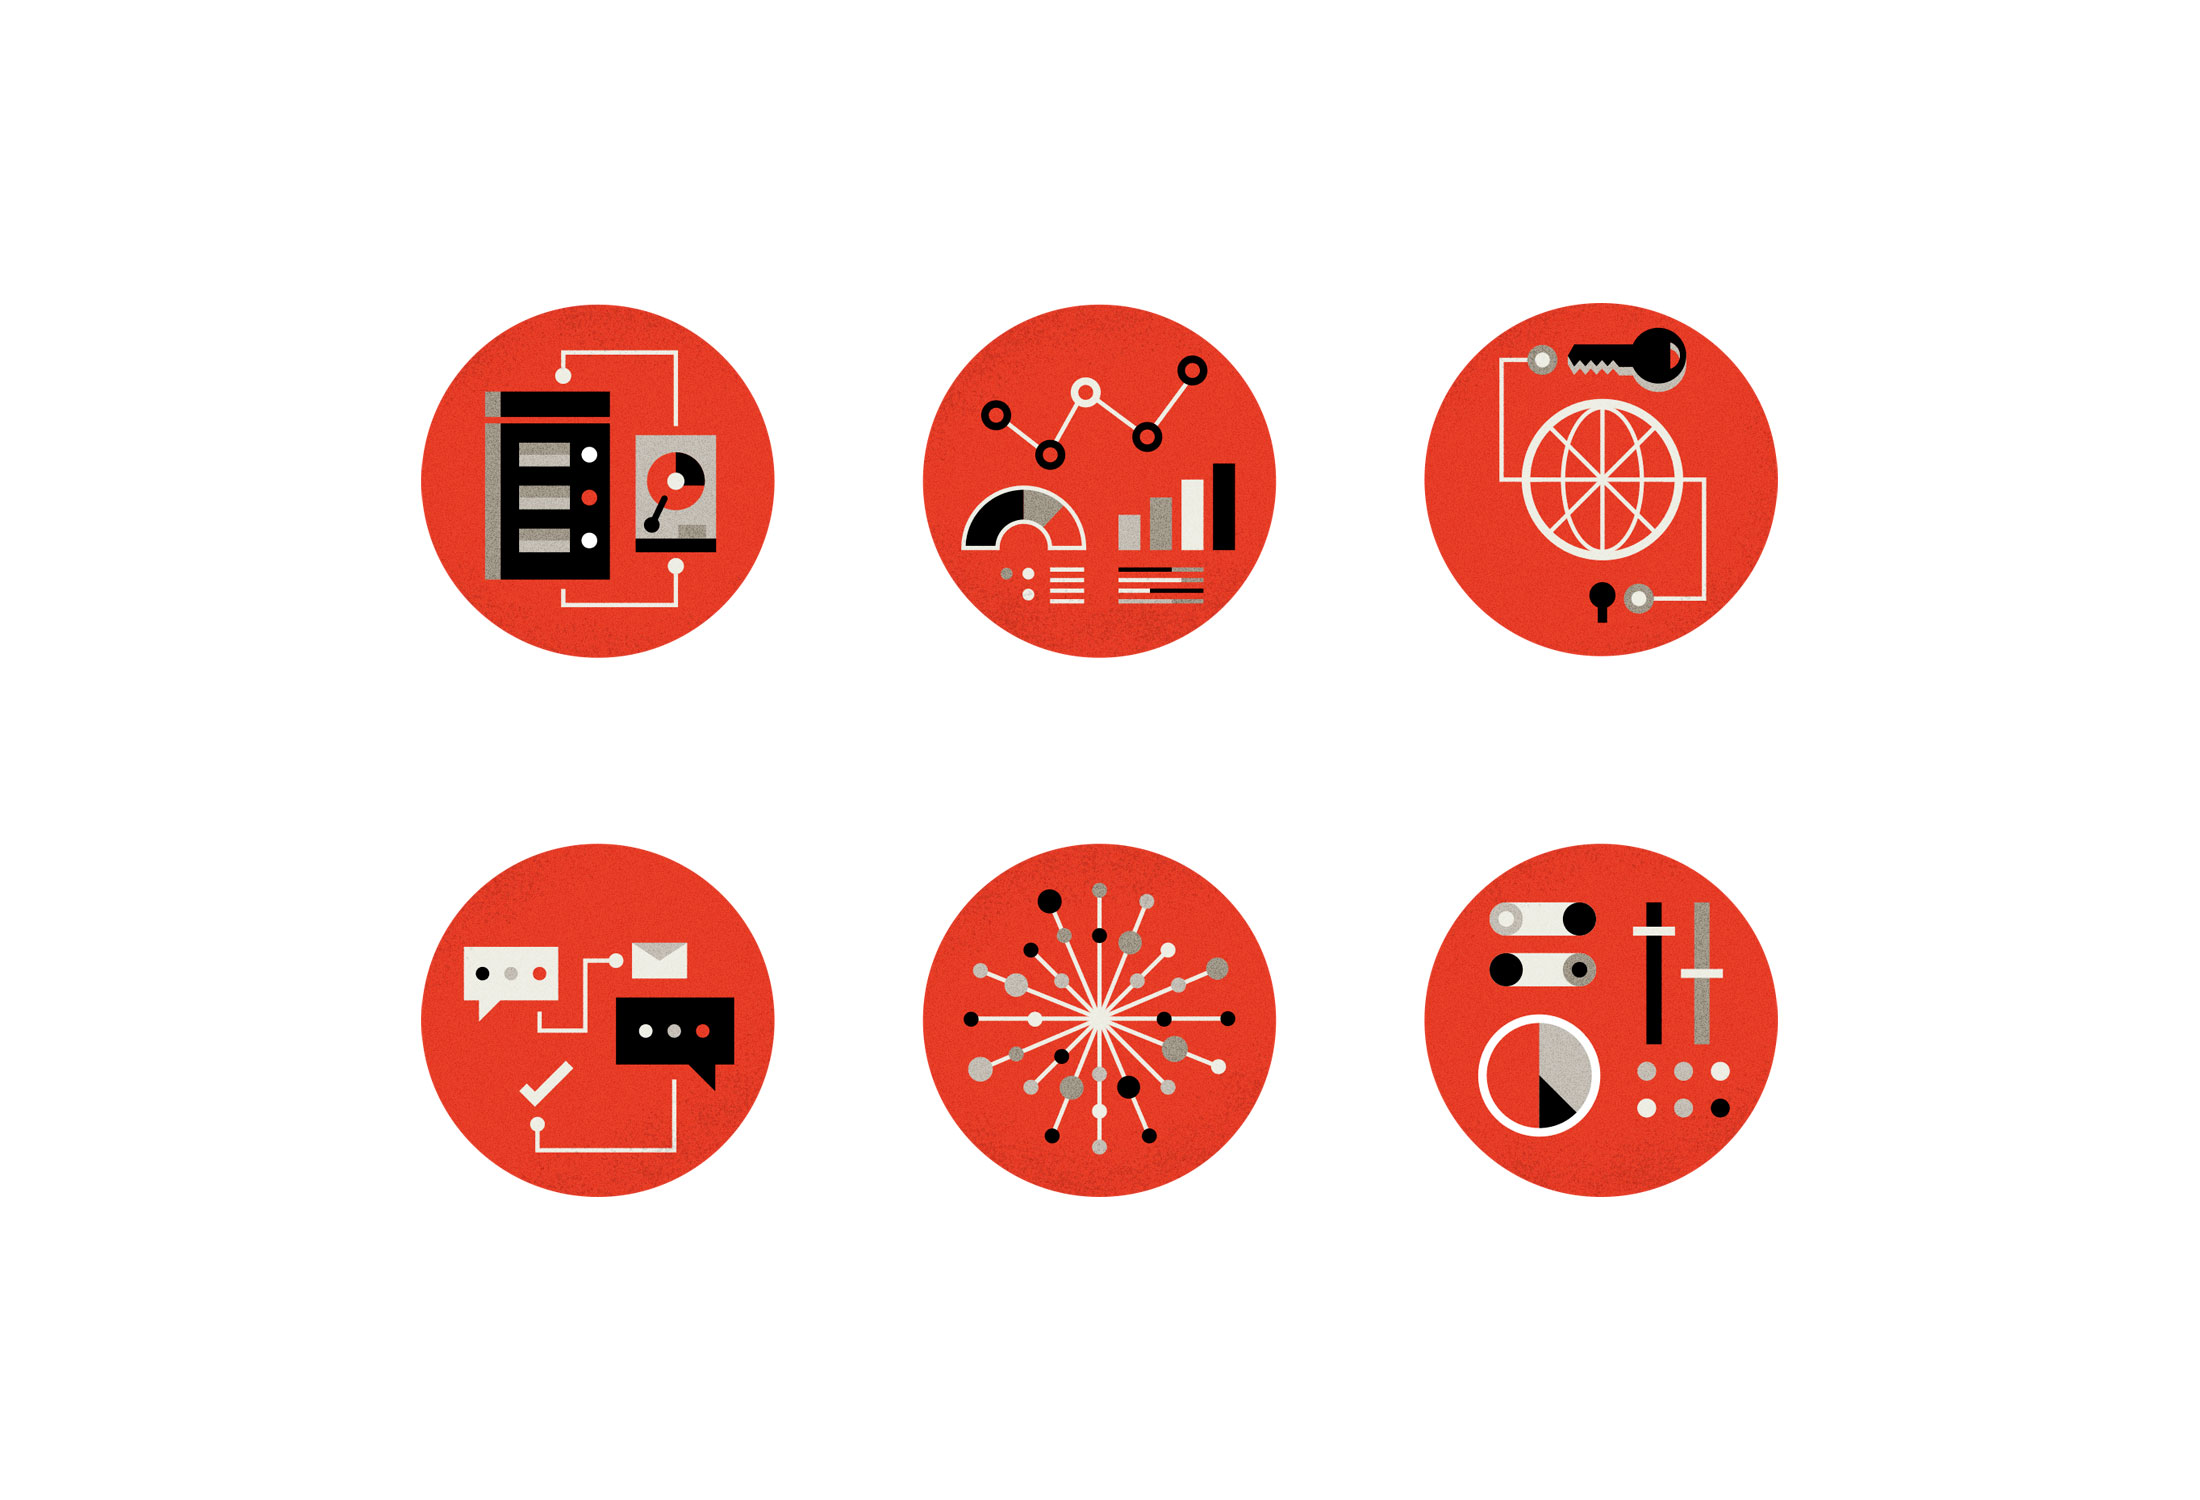 eQualitie icons by Parko Polo